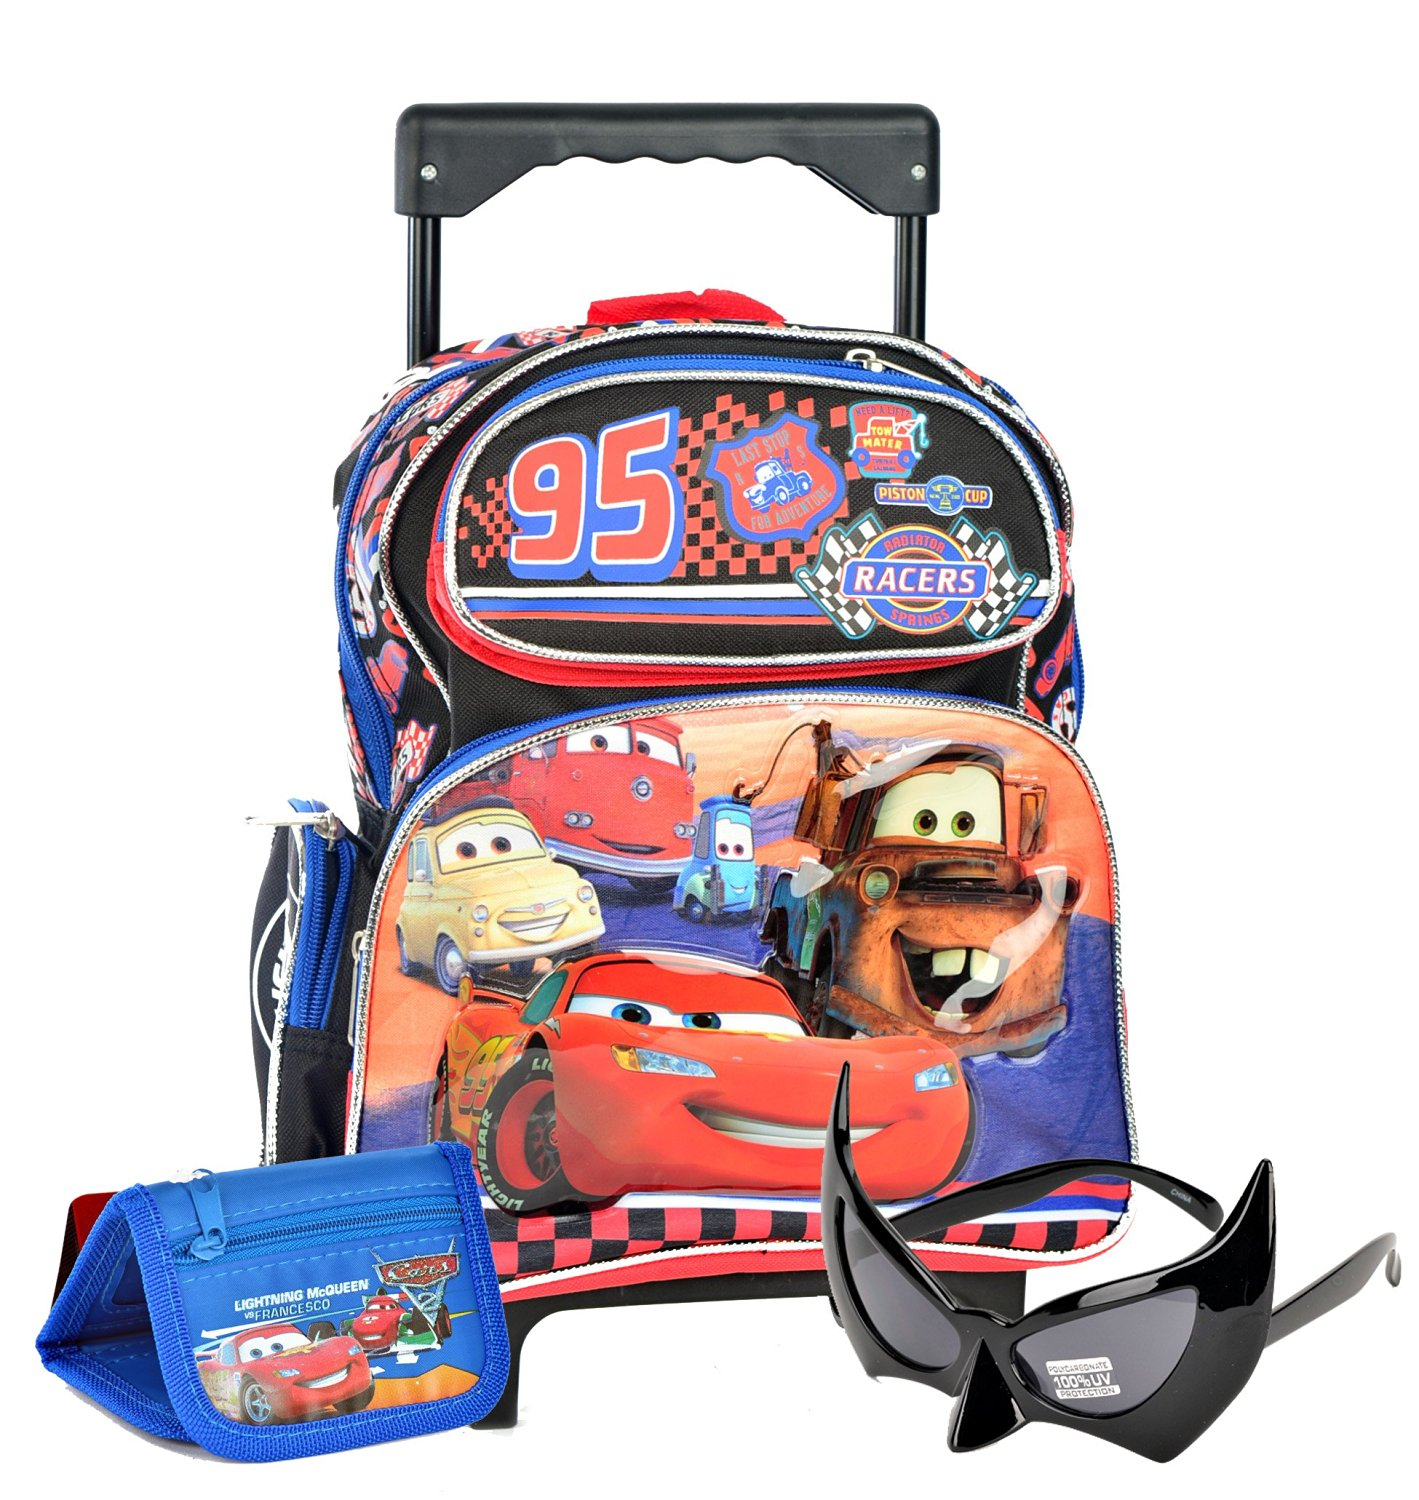 Cheap Toddler Cars Backpack, Find Toddler Cars Backpack